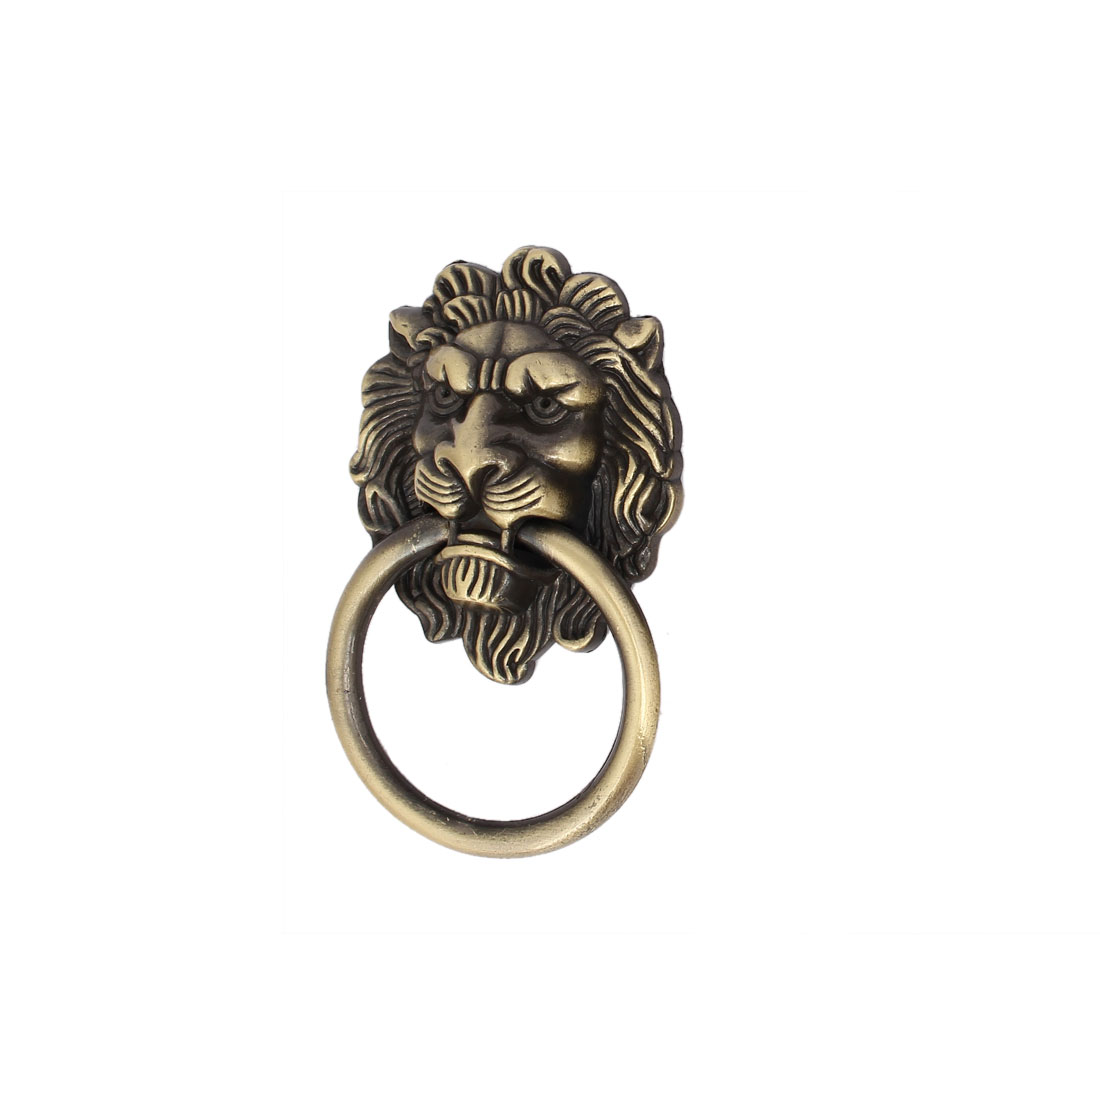 Home Furniture Chest Lion Shape Metal Pull Handle Ring Bronze Tone - image 3 of 3